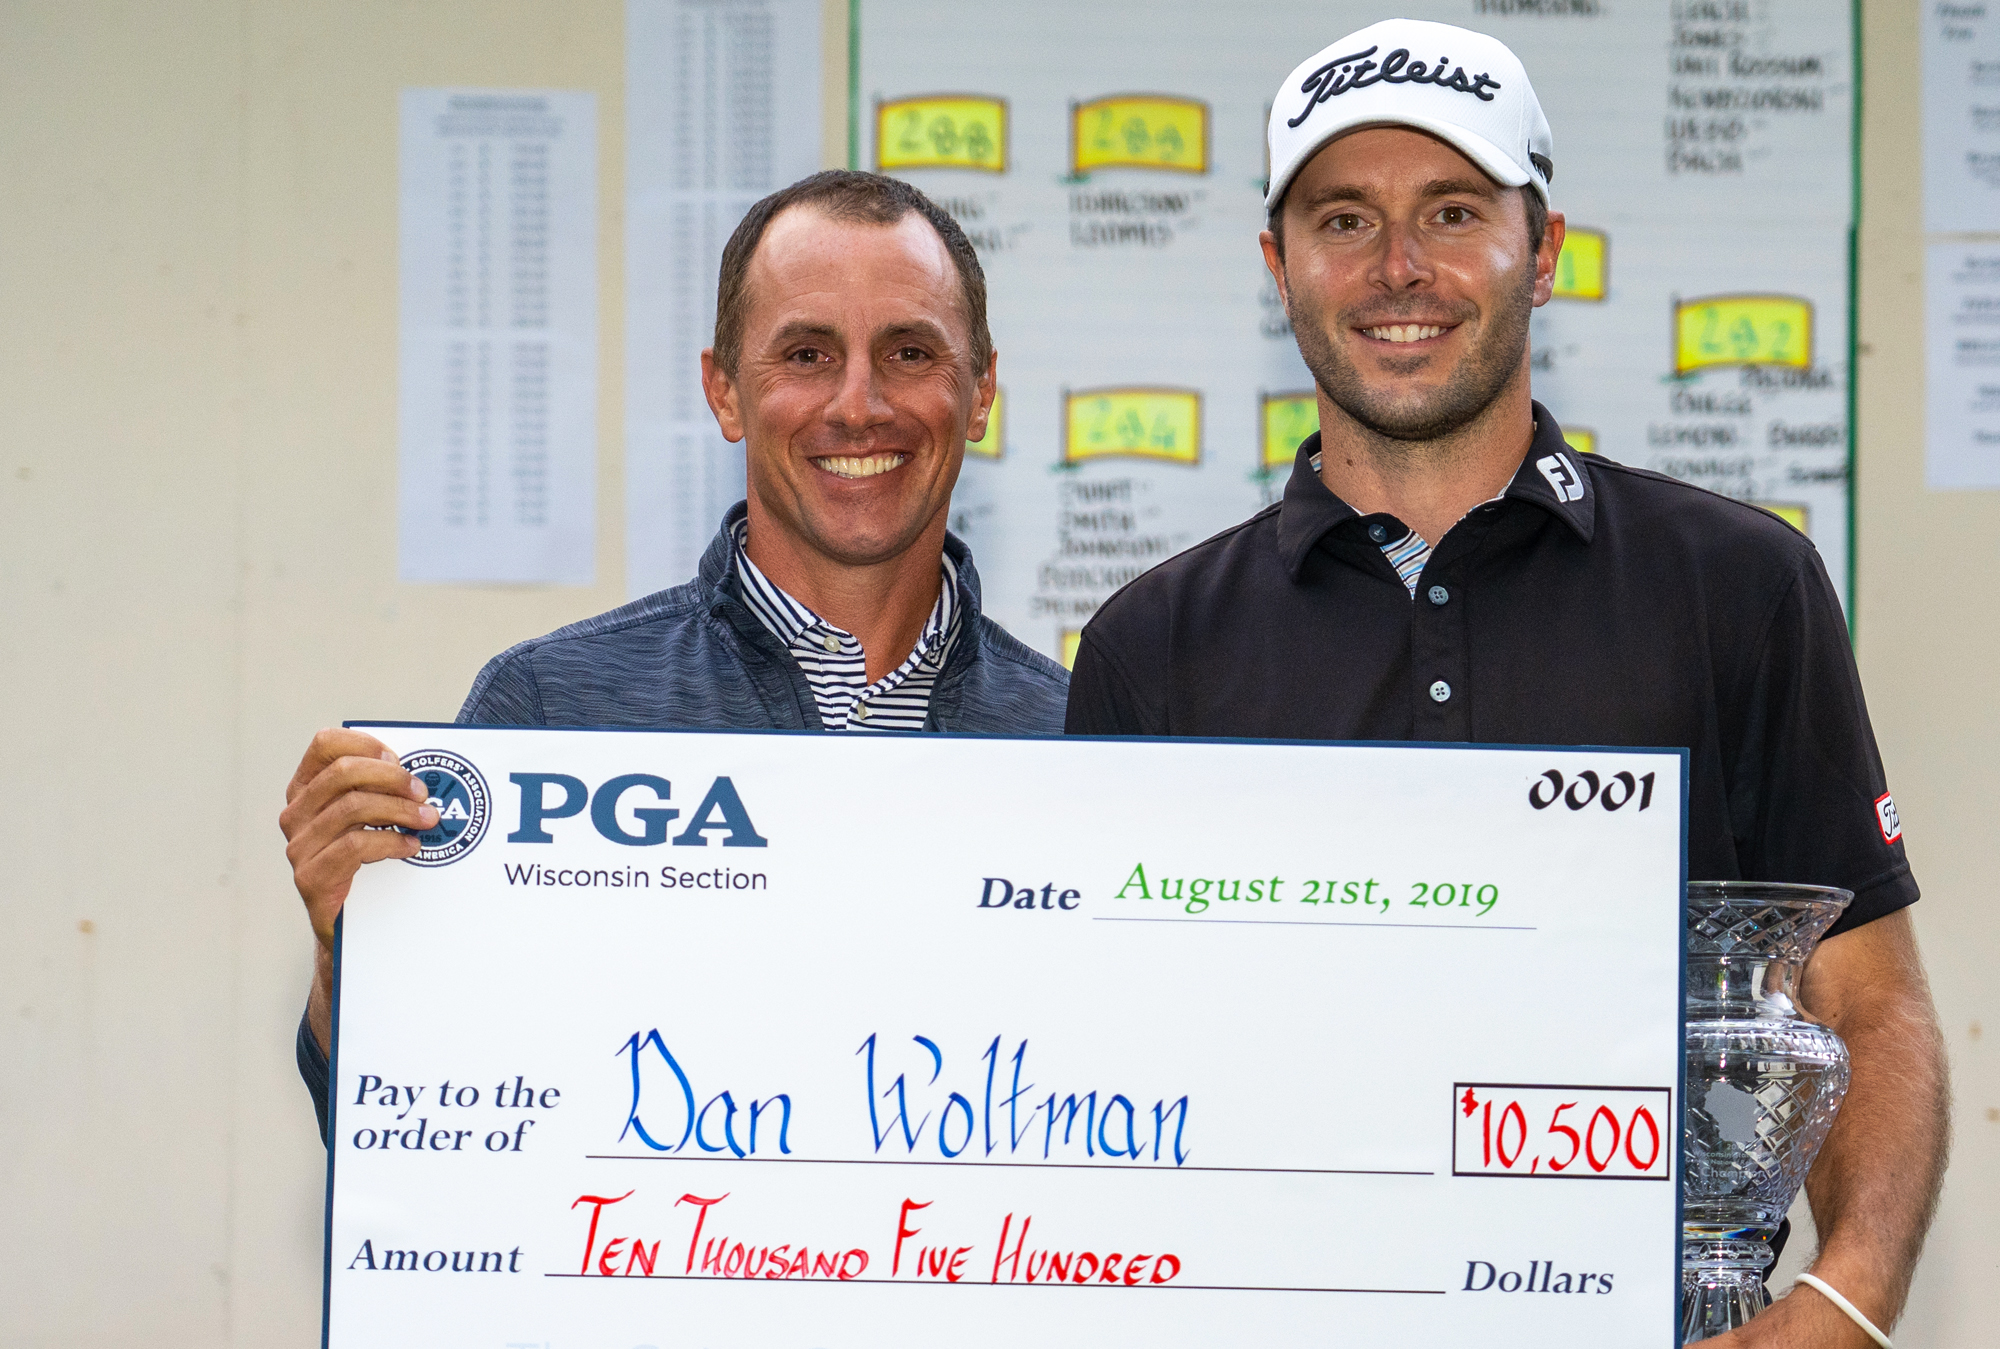 Dan Woltman with check